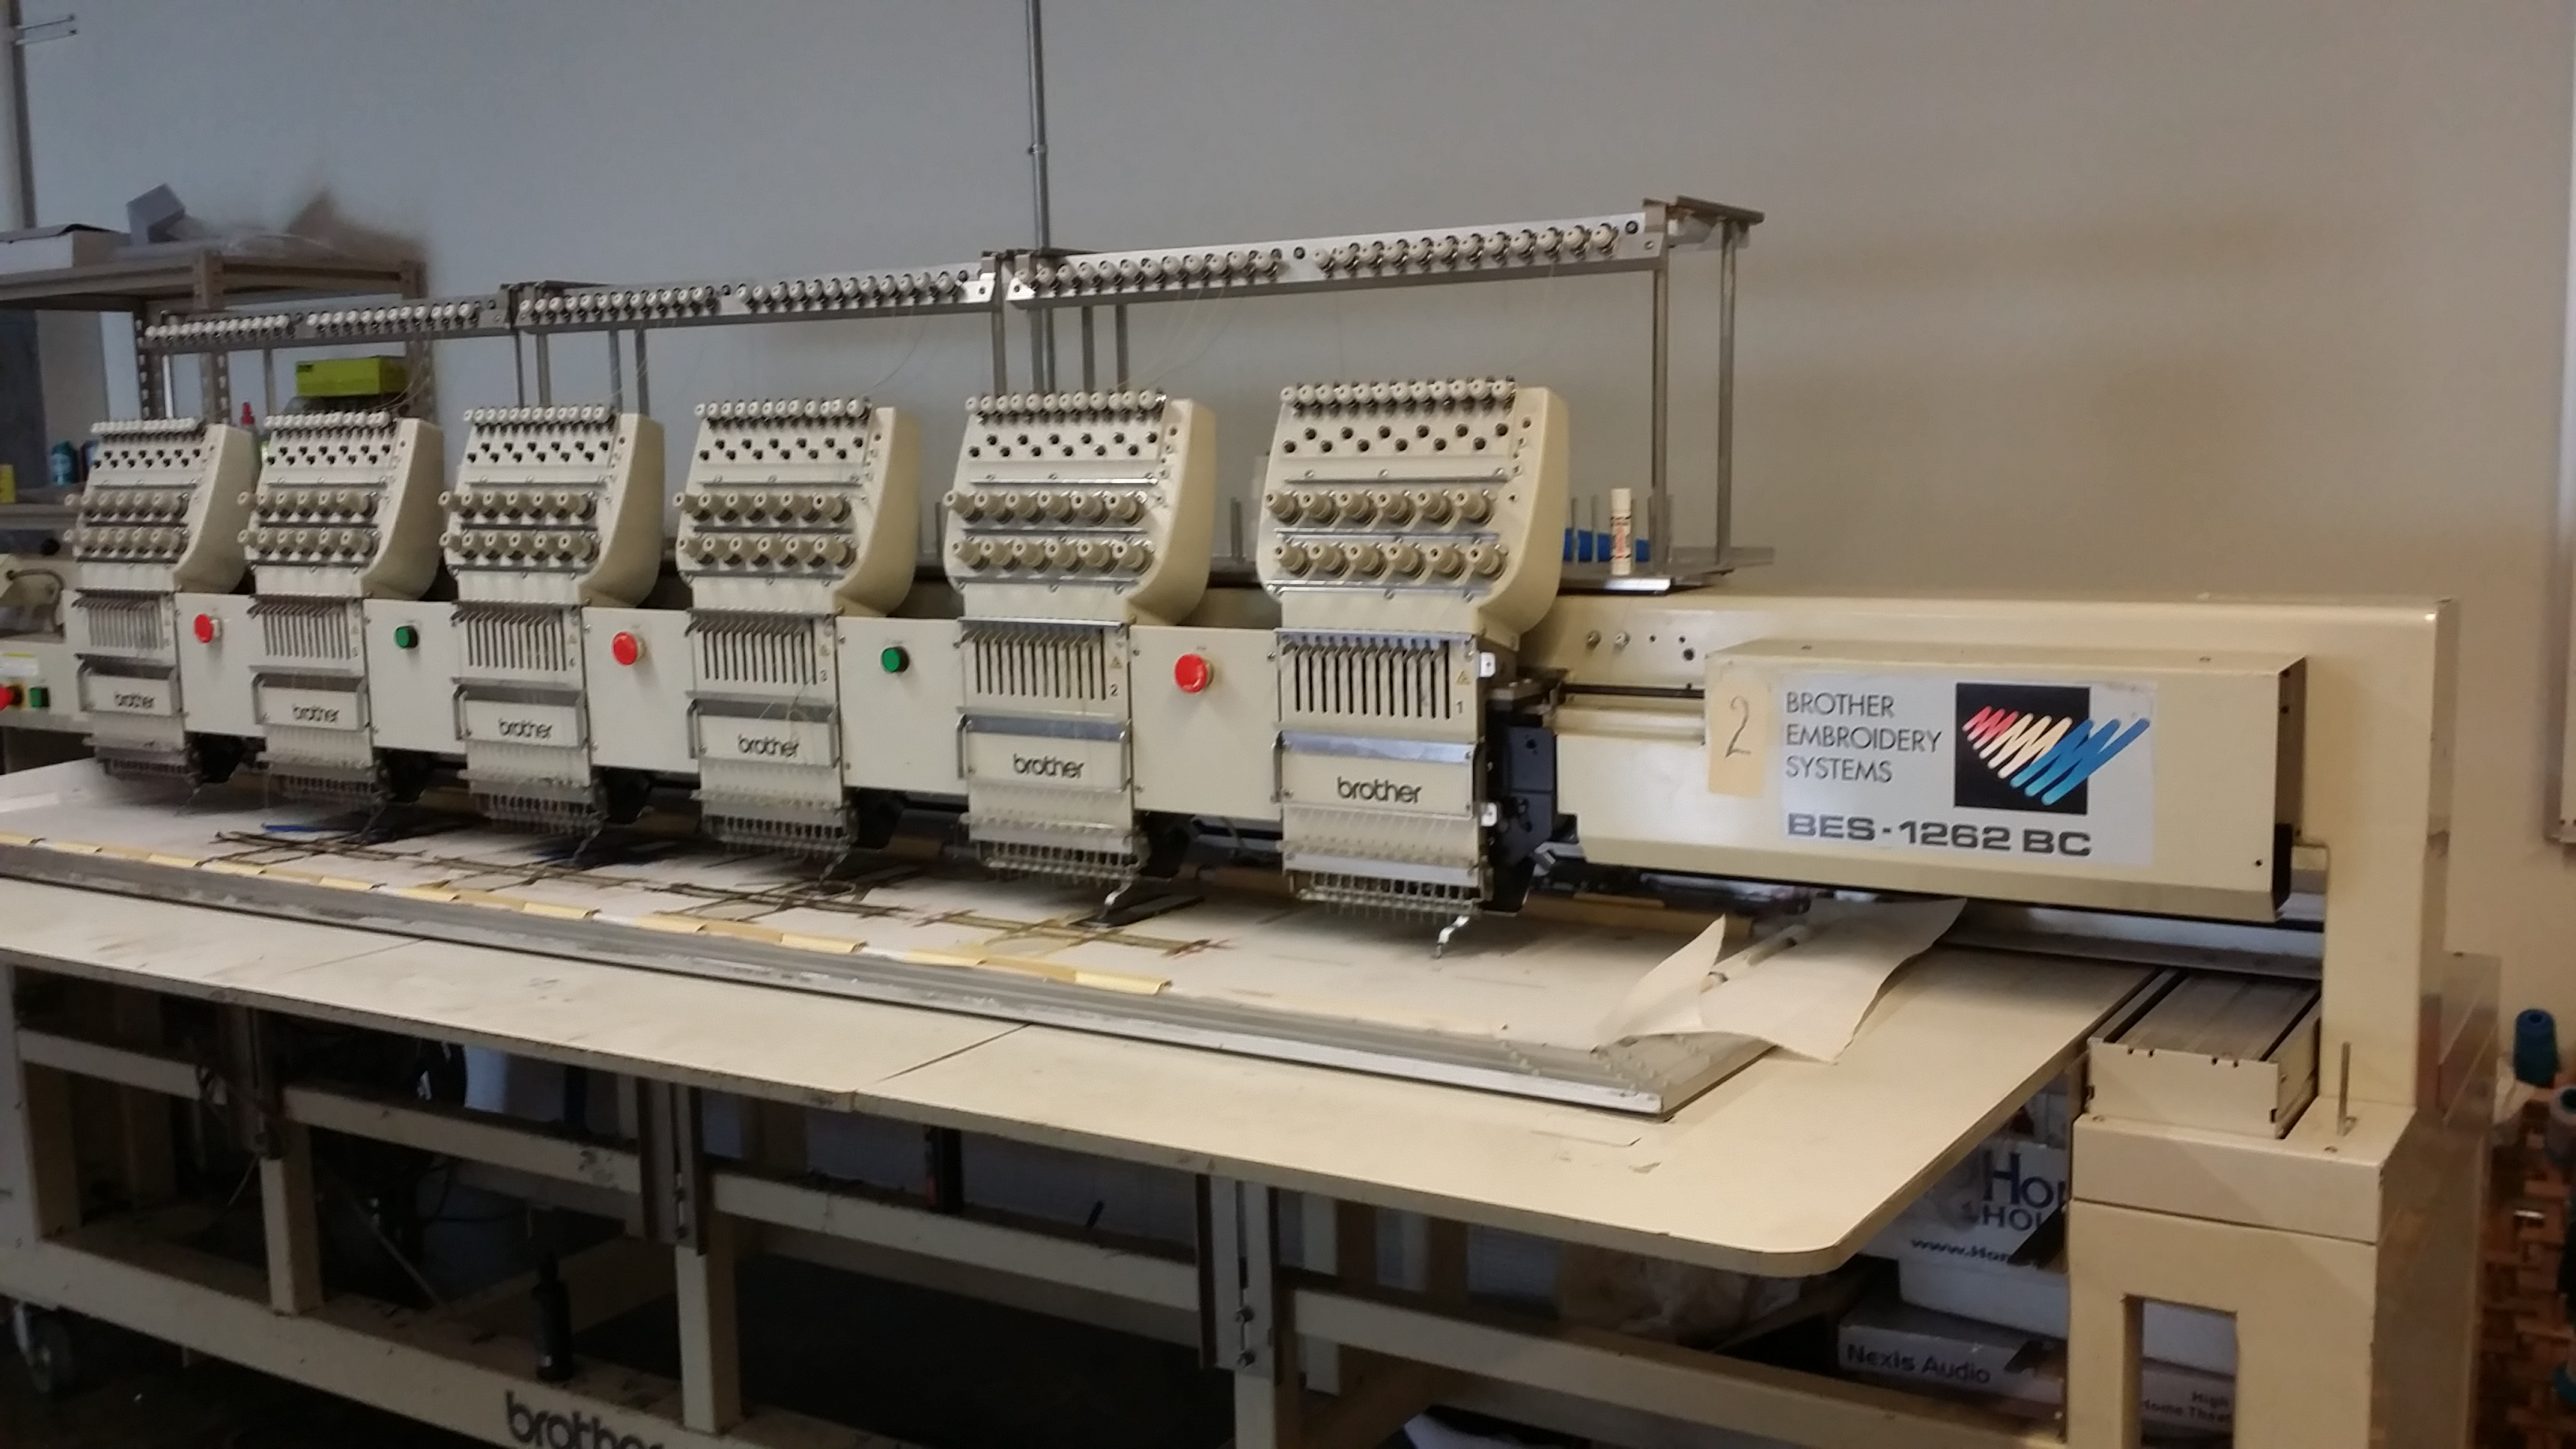 ... BROTHER BES 1262 BC 6 Head Embroidery Machine-20141114_103329.jpg